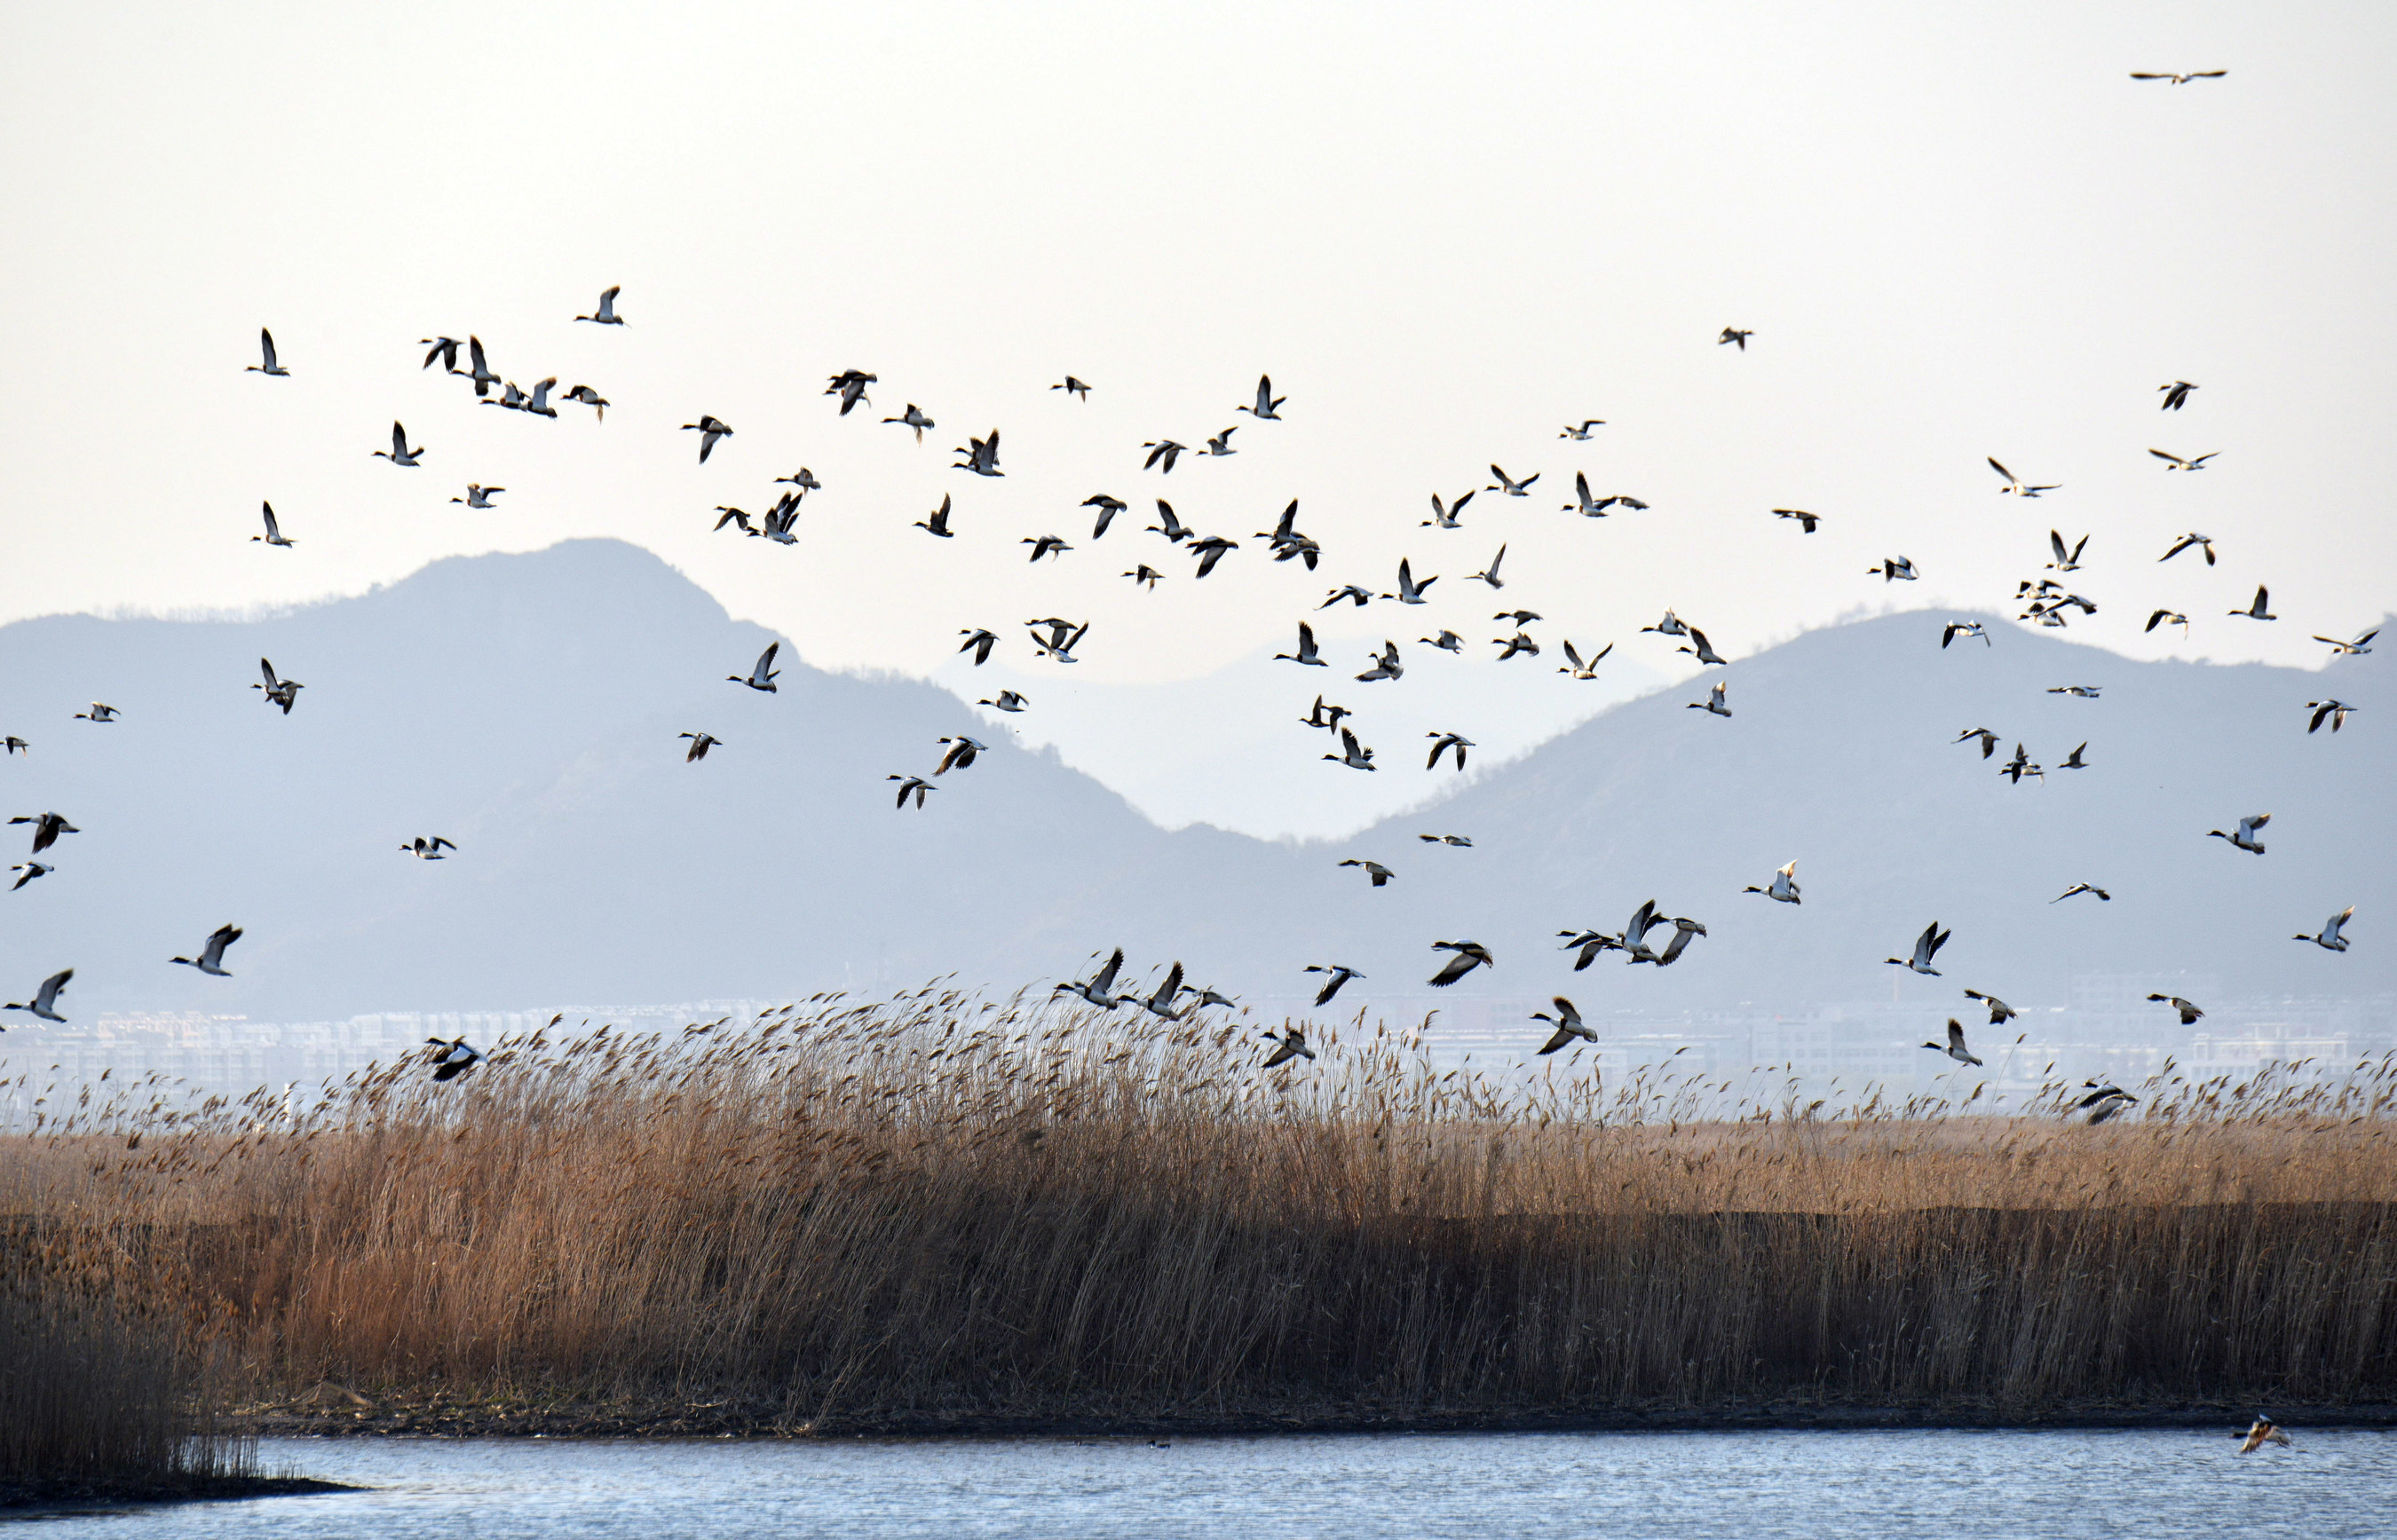 Following its restoration, the Dandong Yalu River Estuary Wetland is inhabited by over one million birds ...